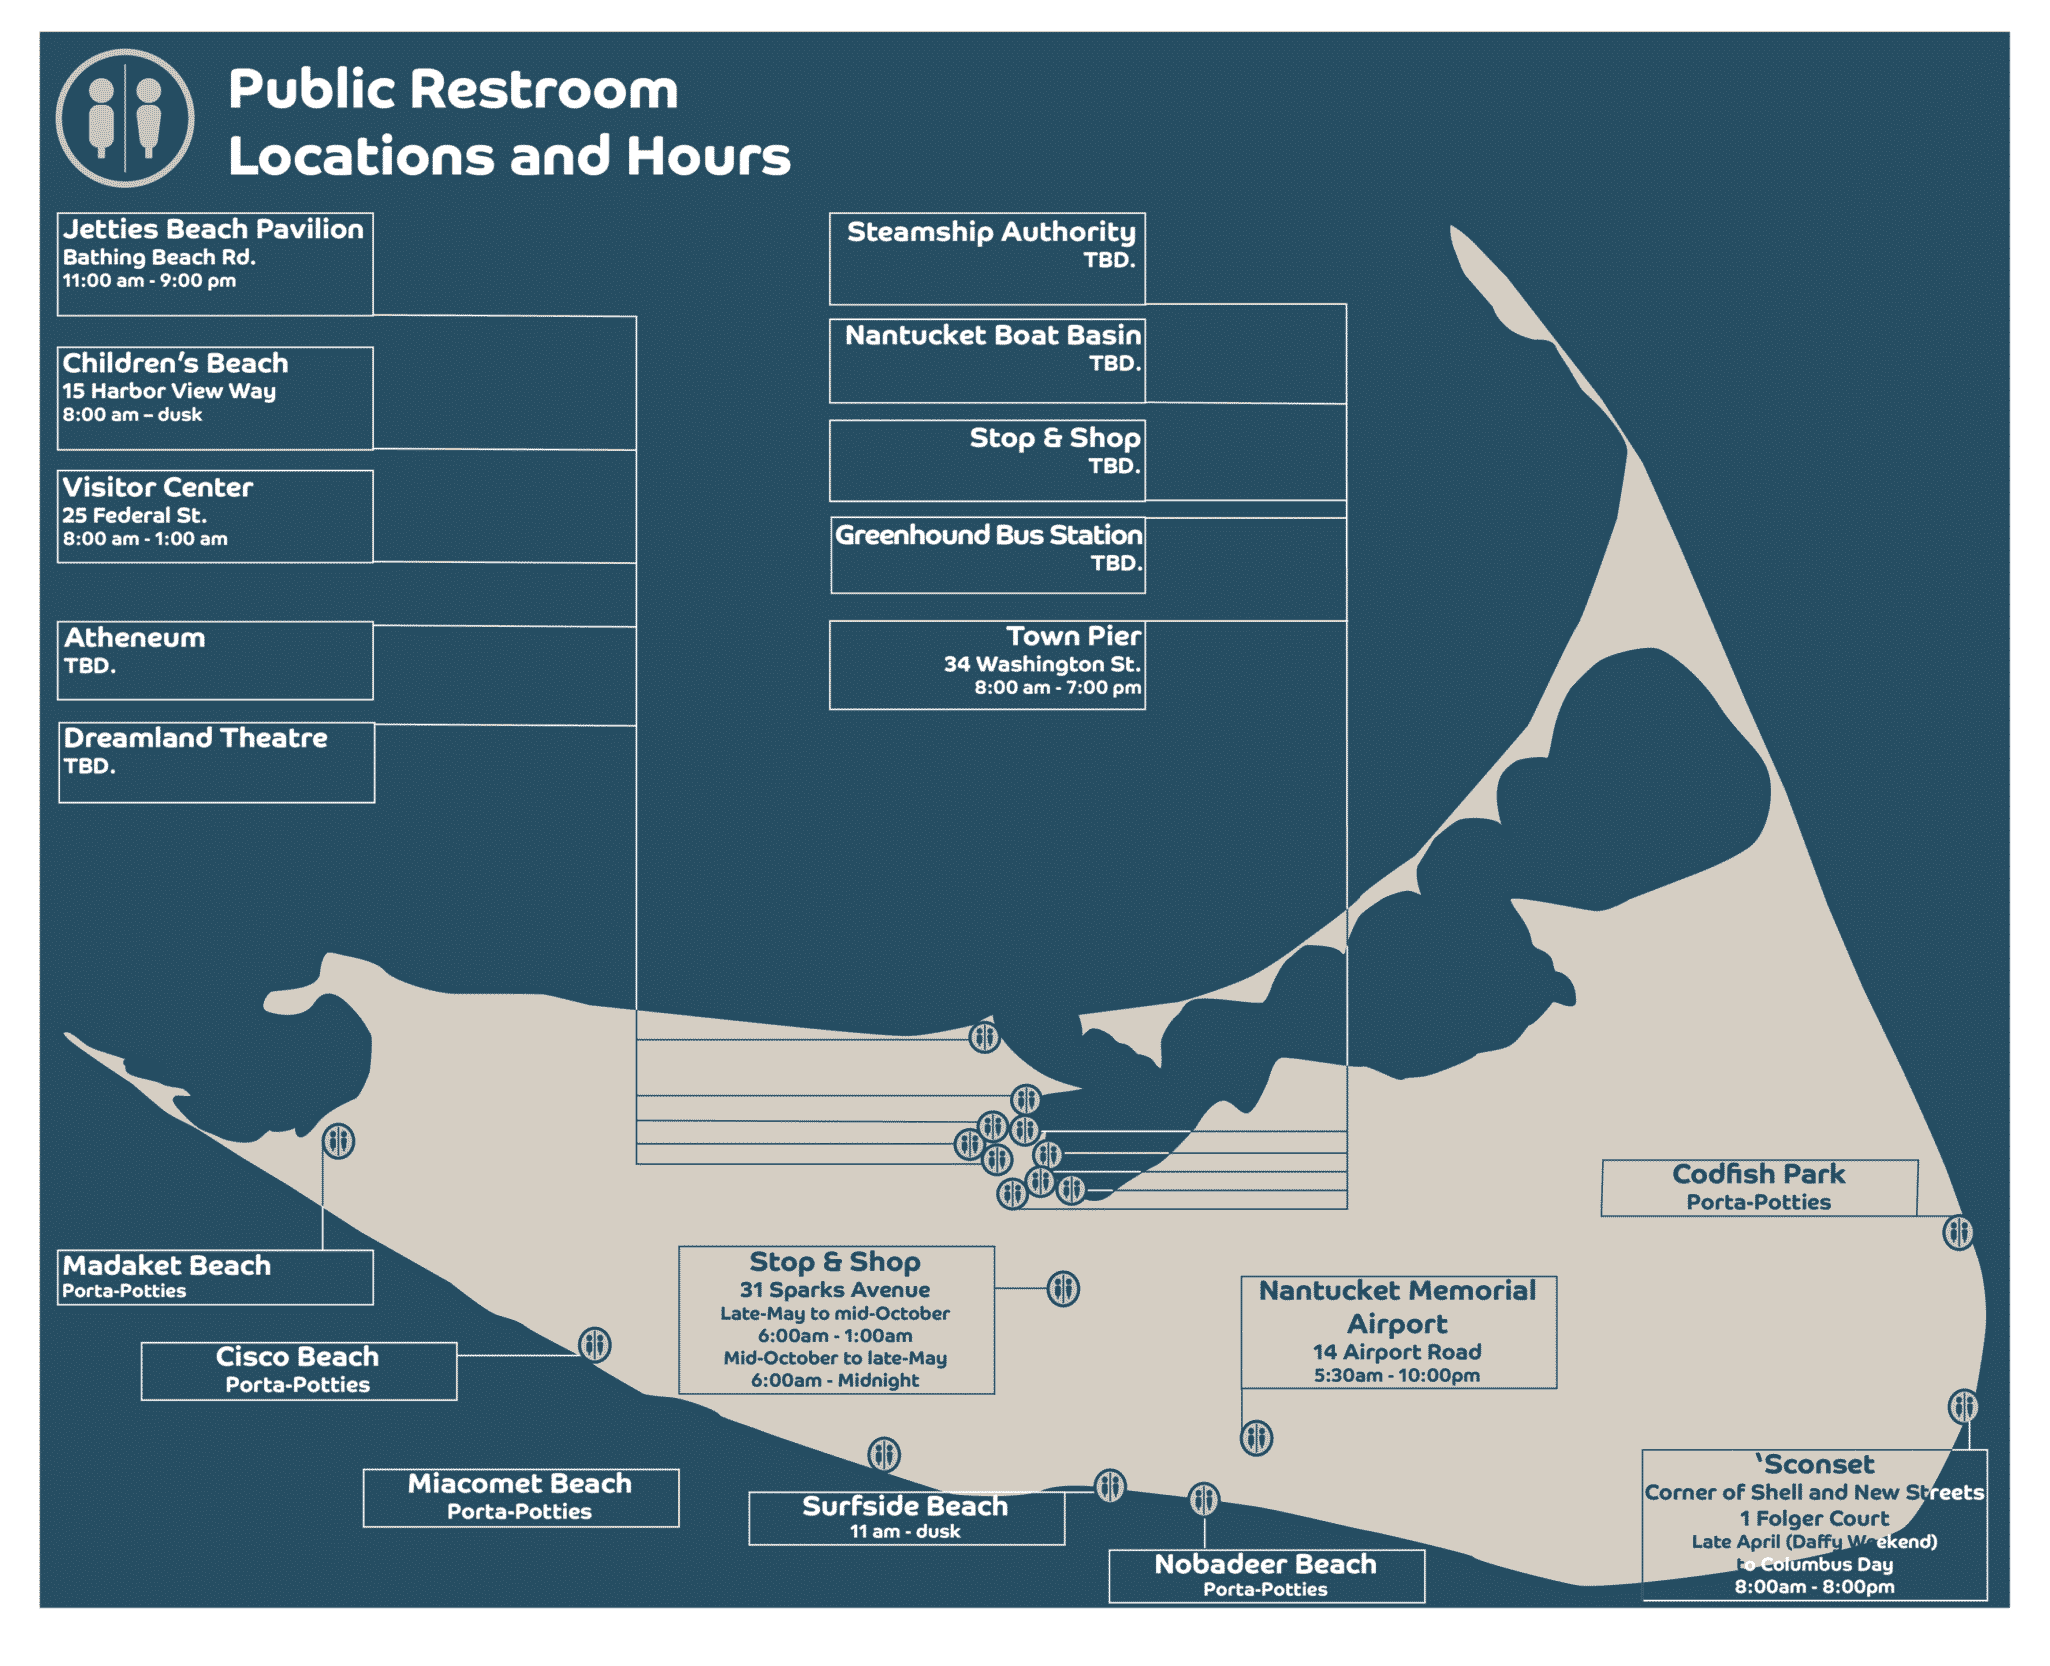 Public Restroom Locations and hours | Nantucket, MA